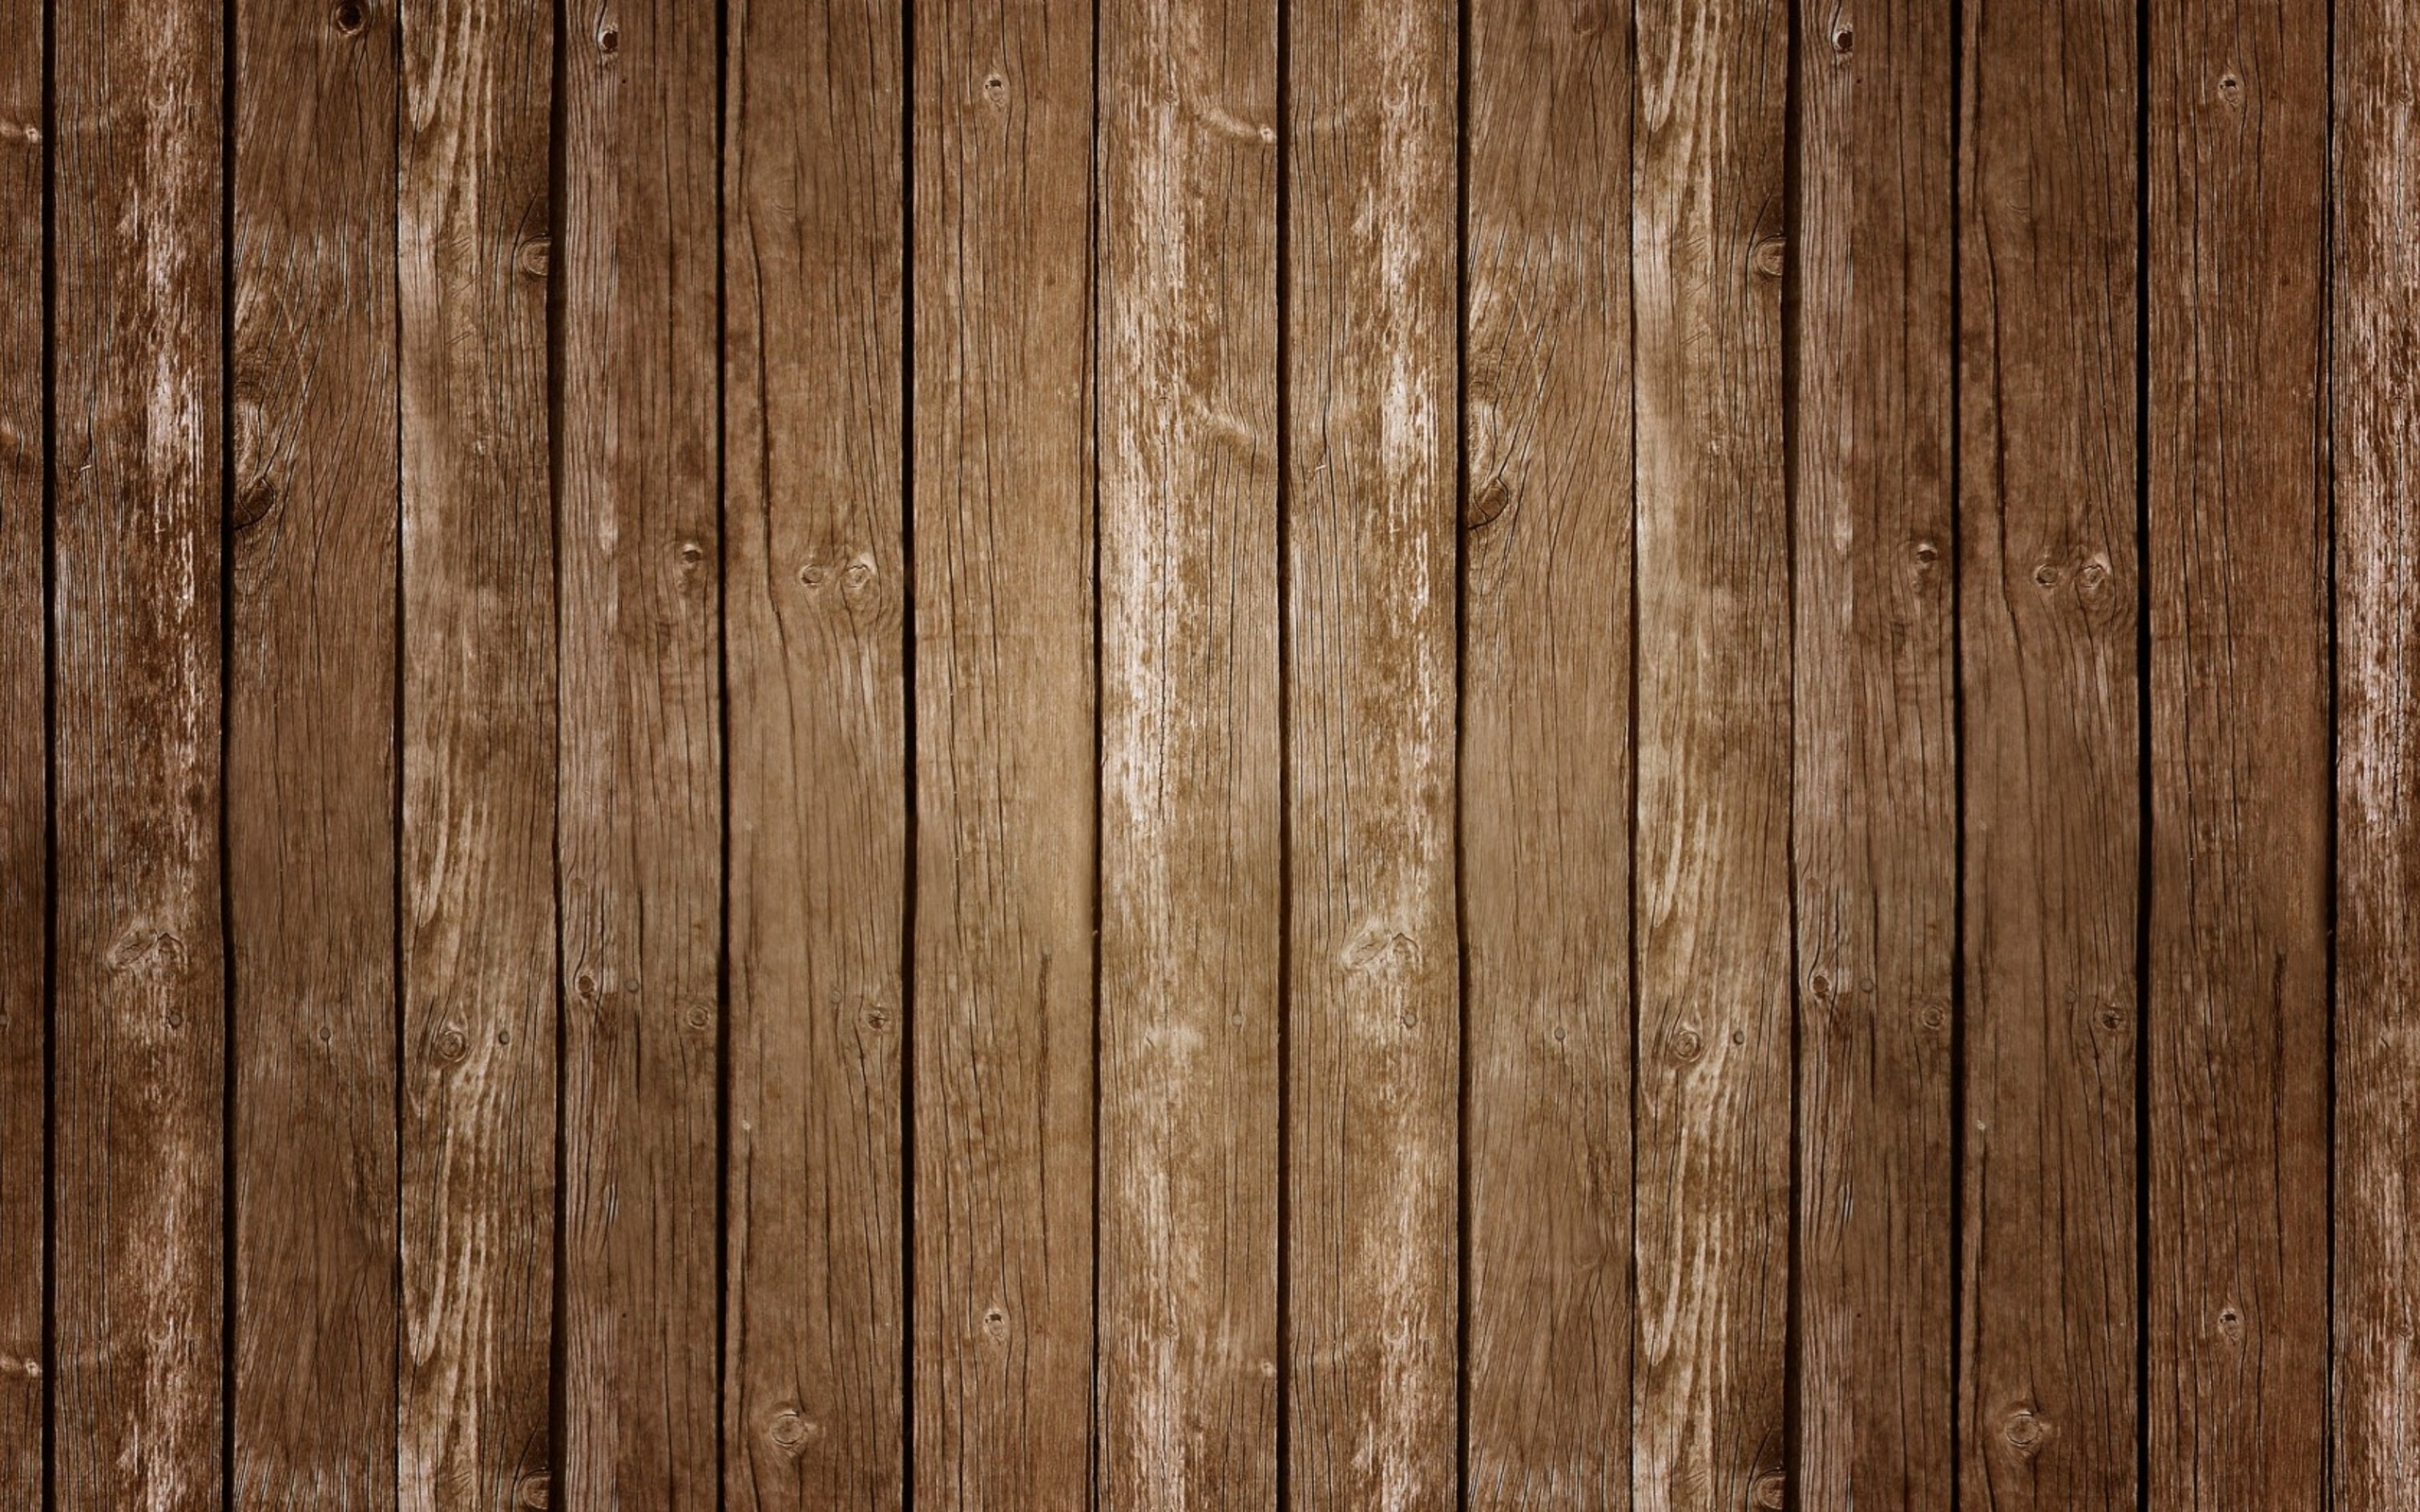 Android wallpaper knock on wood for Home wallpaper wood